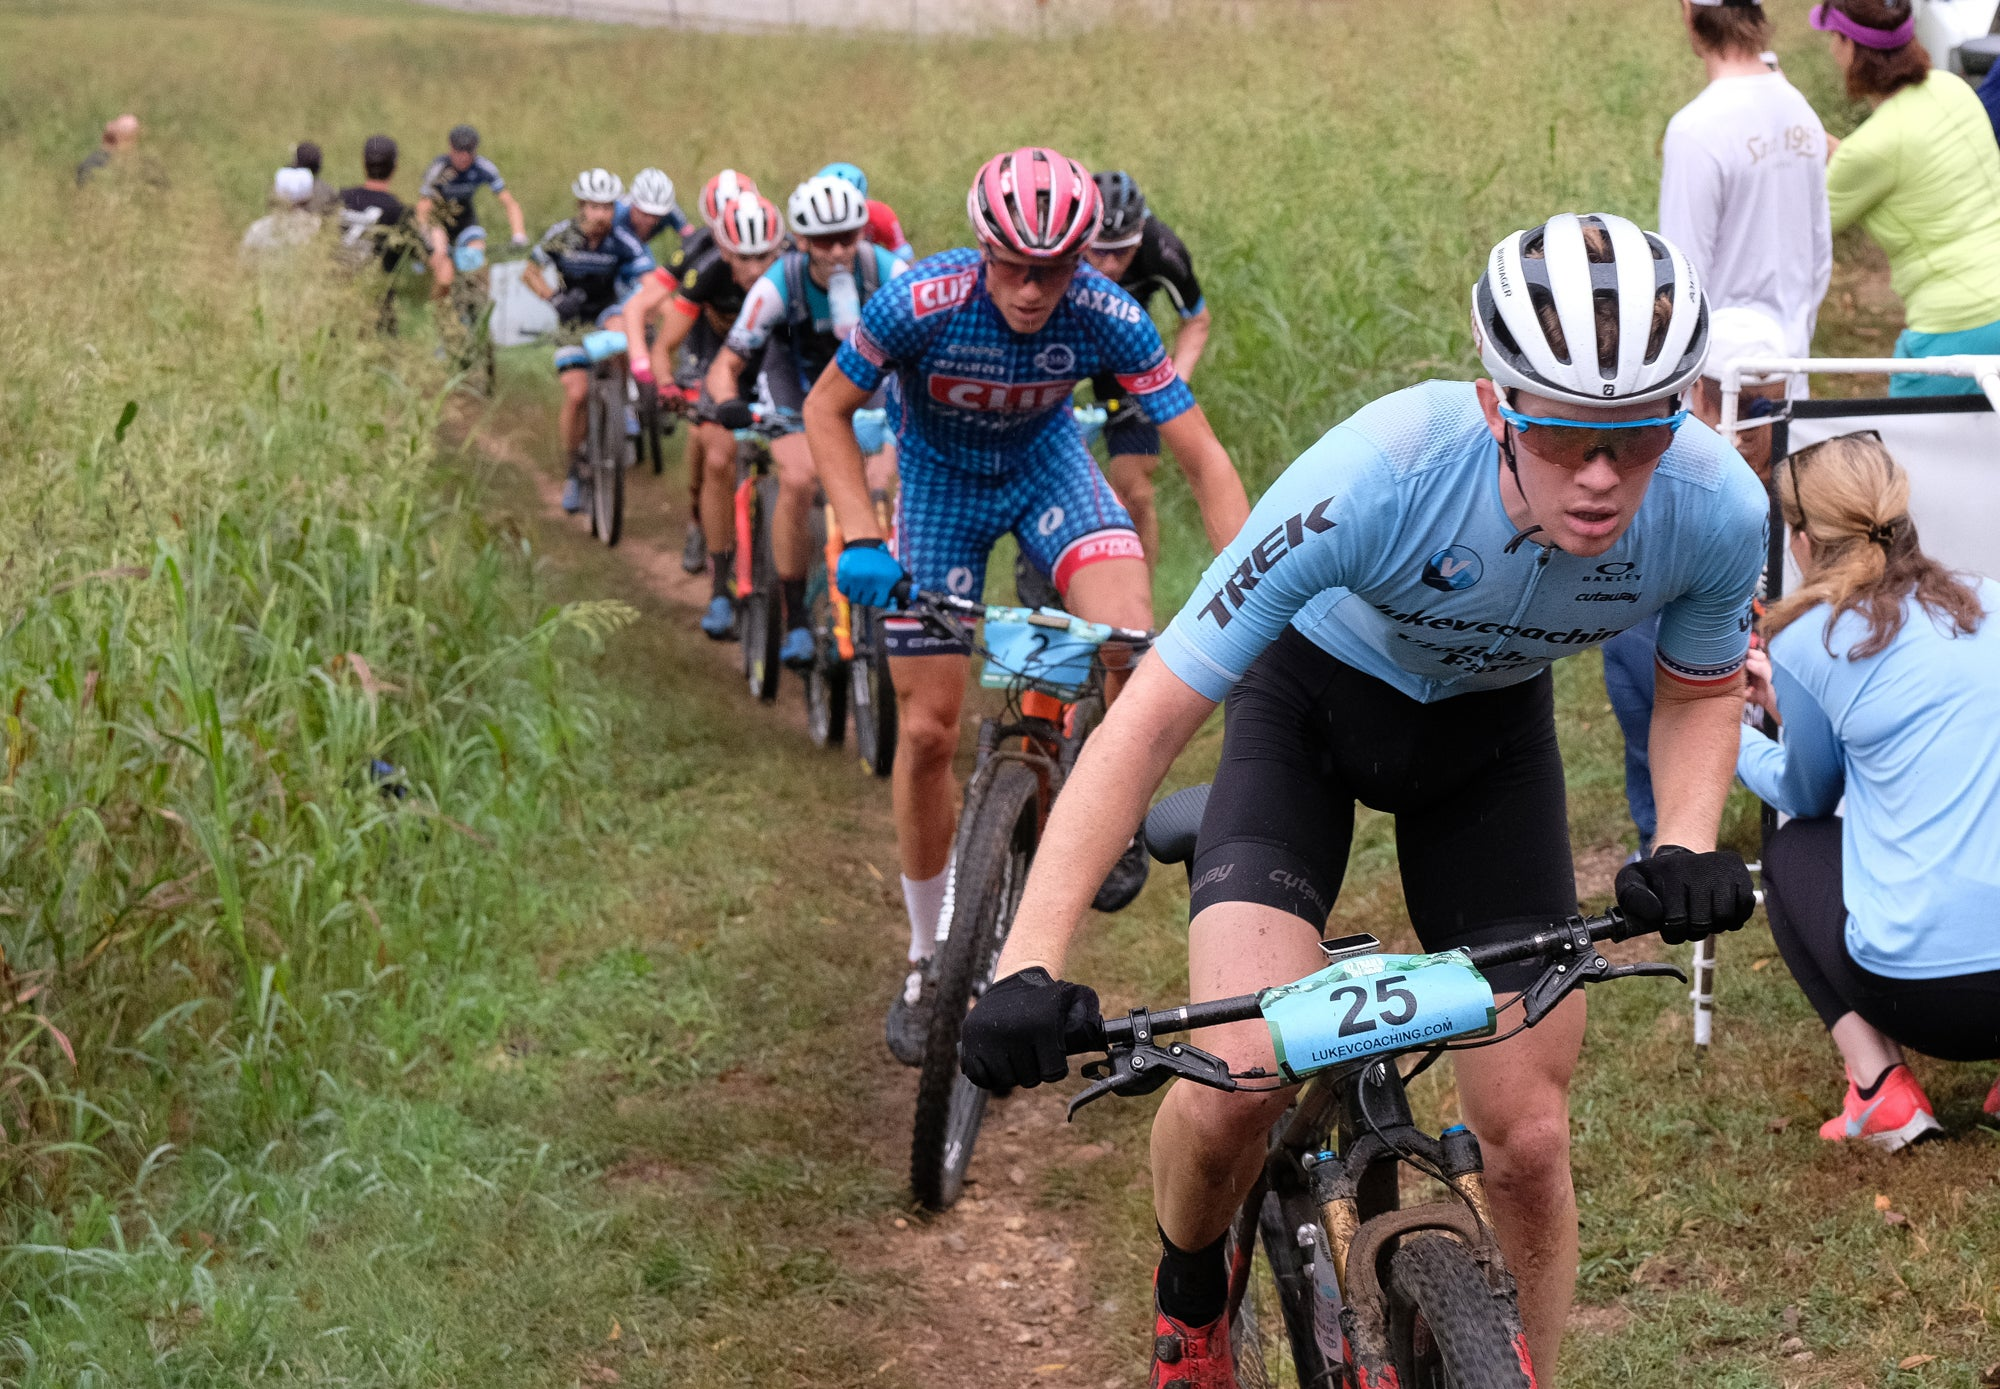 Epic Rides cancels Oz Trails Off-Road due to COVID-19 – VeloNews.com